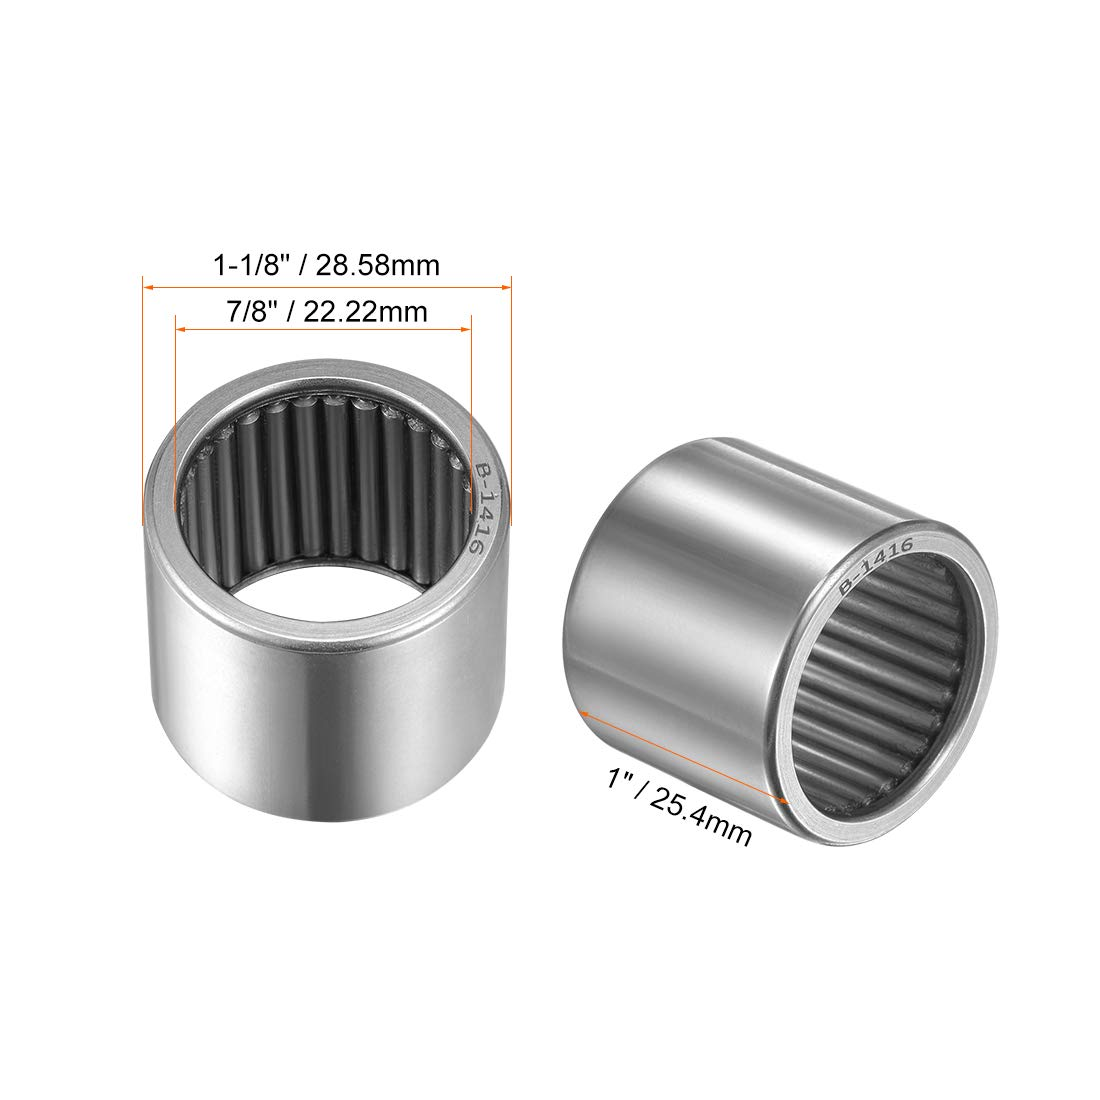 Open 7//8-inch I.D uxcell B1416 Needle Roller Bearings Full Complement Drawn Cup 1-1//8-inch OD 1-inch Width 14400N Static Load 7040N Dynamic Load 4800Rpm Limiting Speed 2pcs